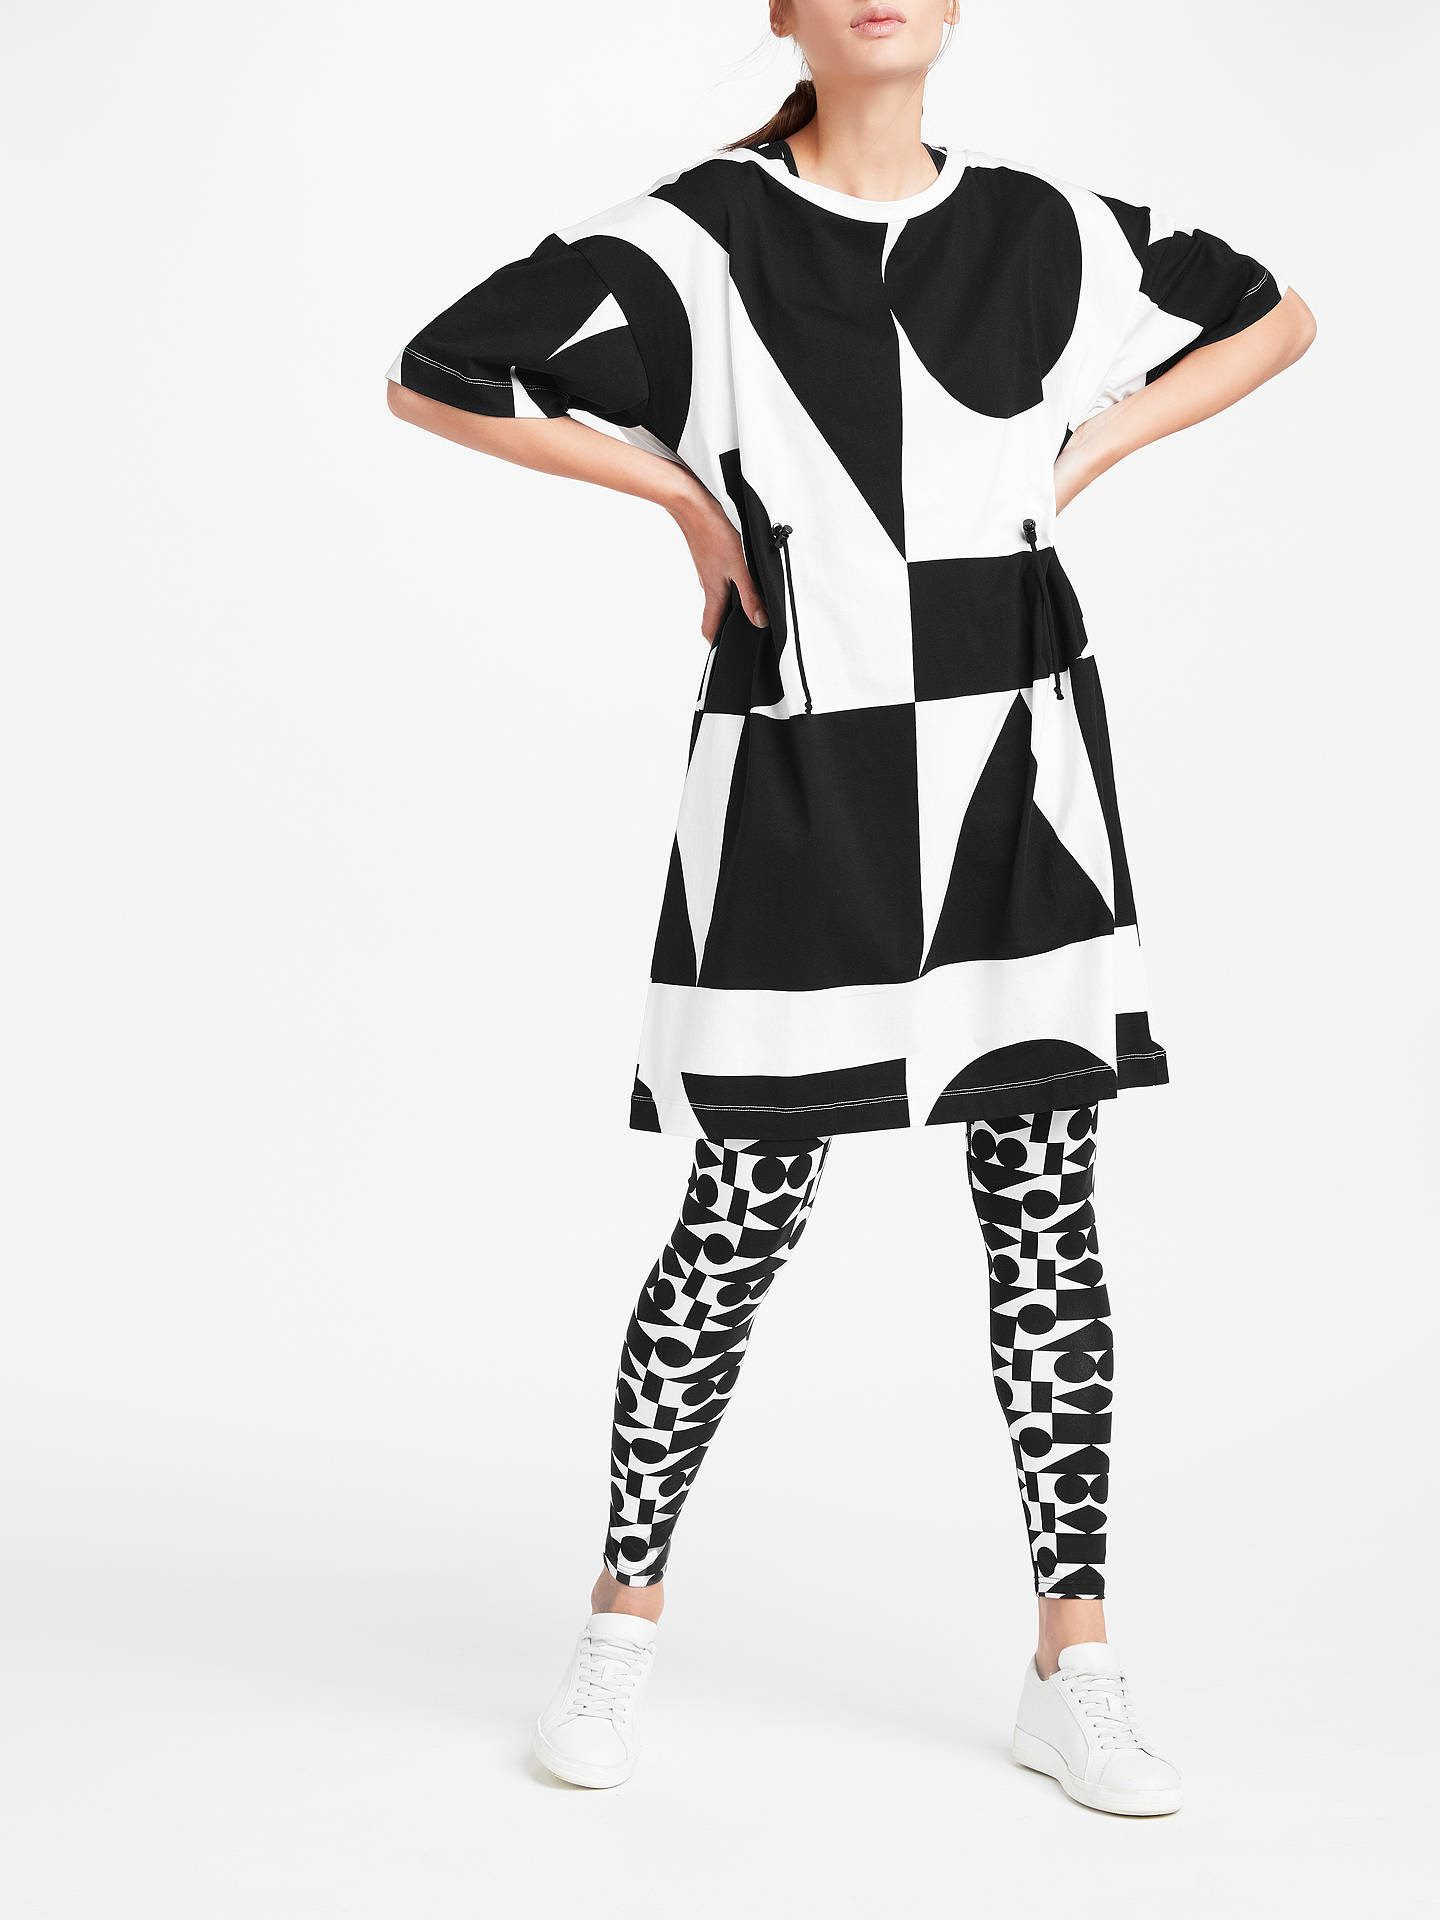 BuyPATTERNITY + John Lewis Oversized Print Drawcord Dress, Black/White, XS Online at johnlewis.com